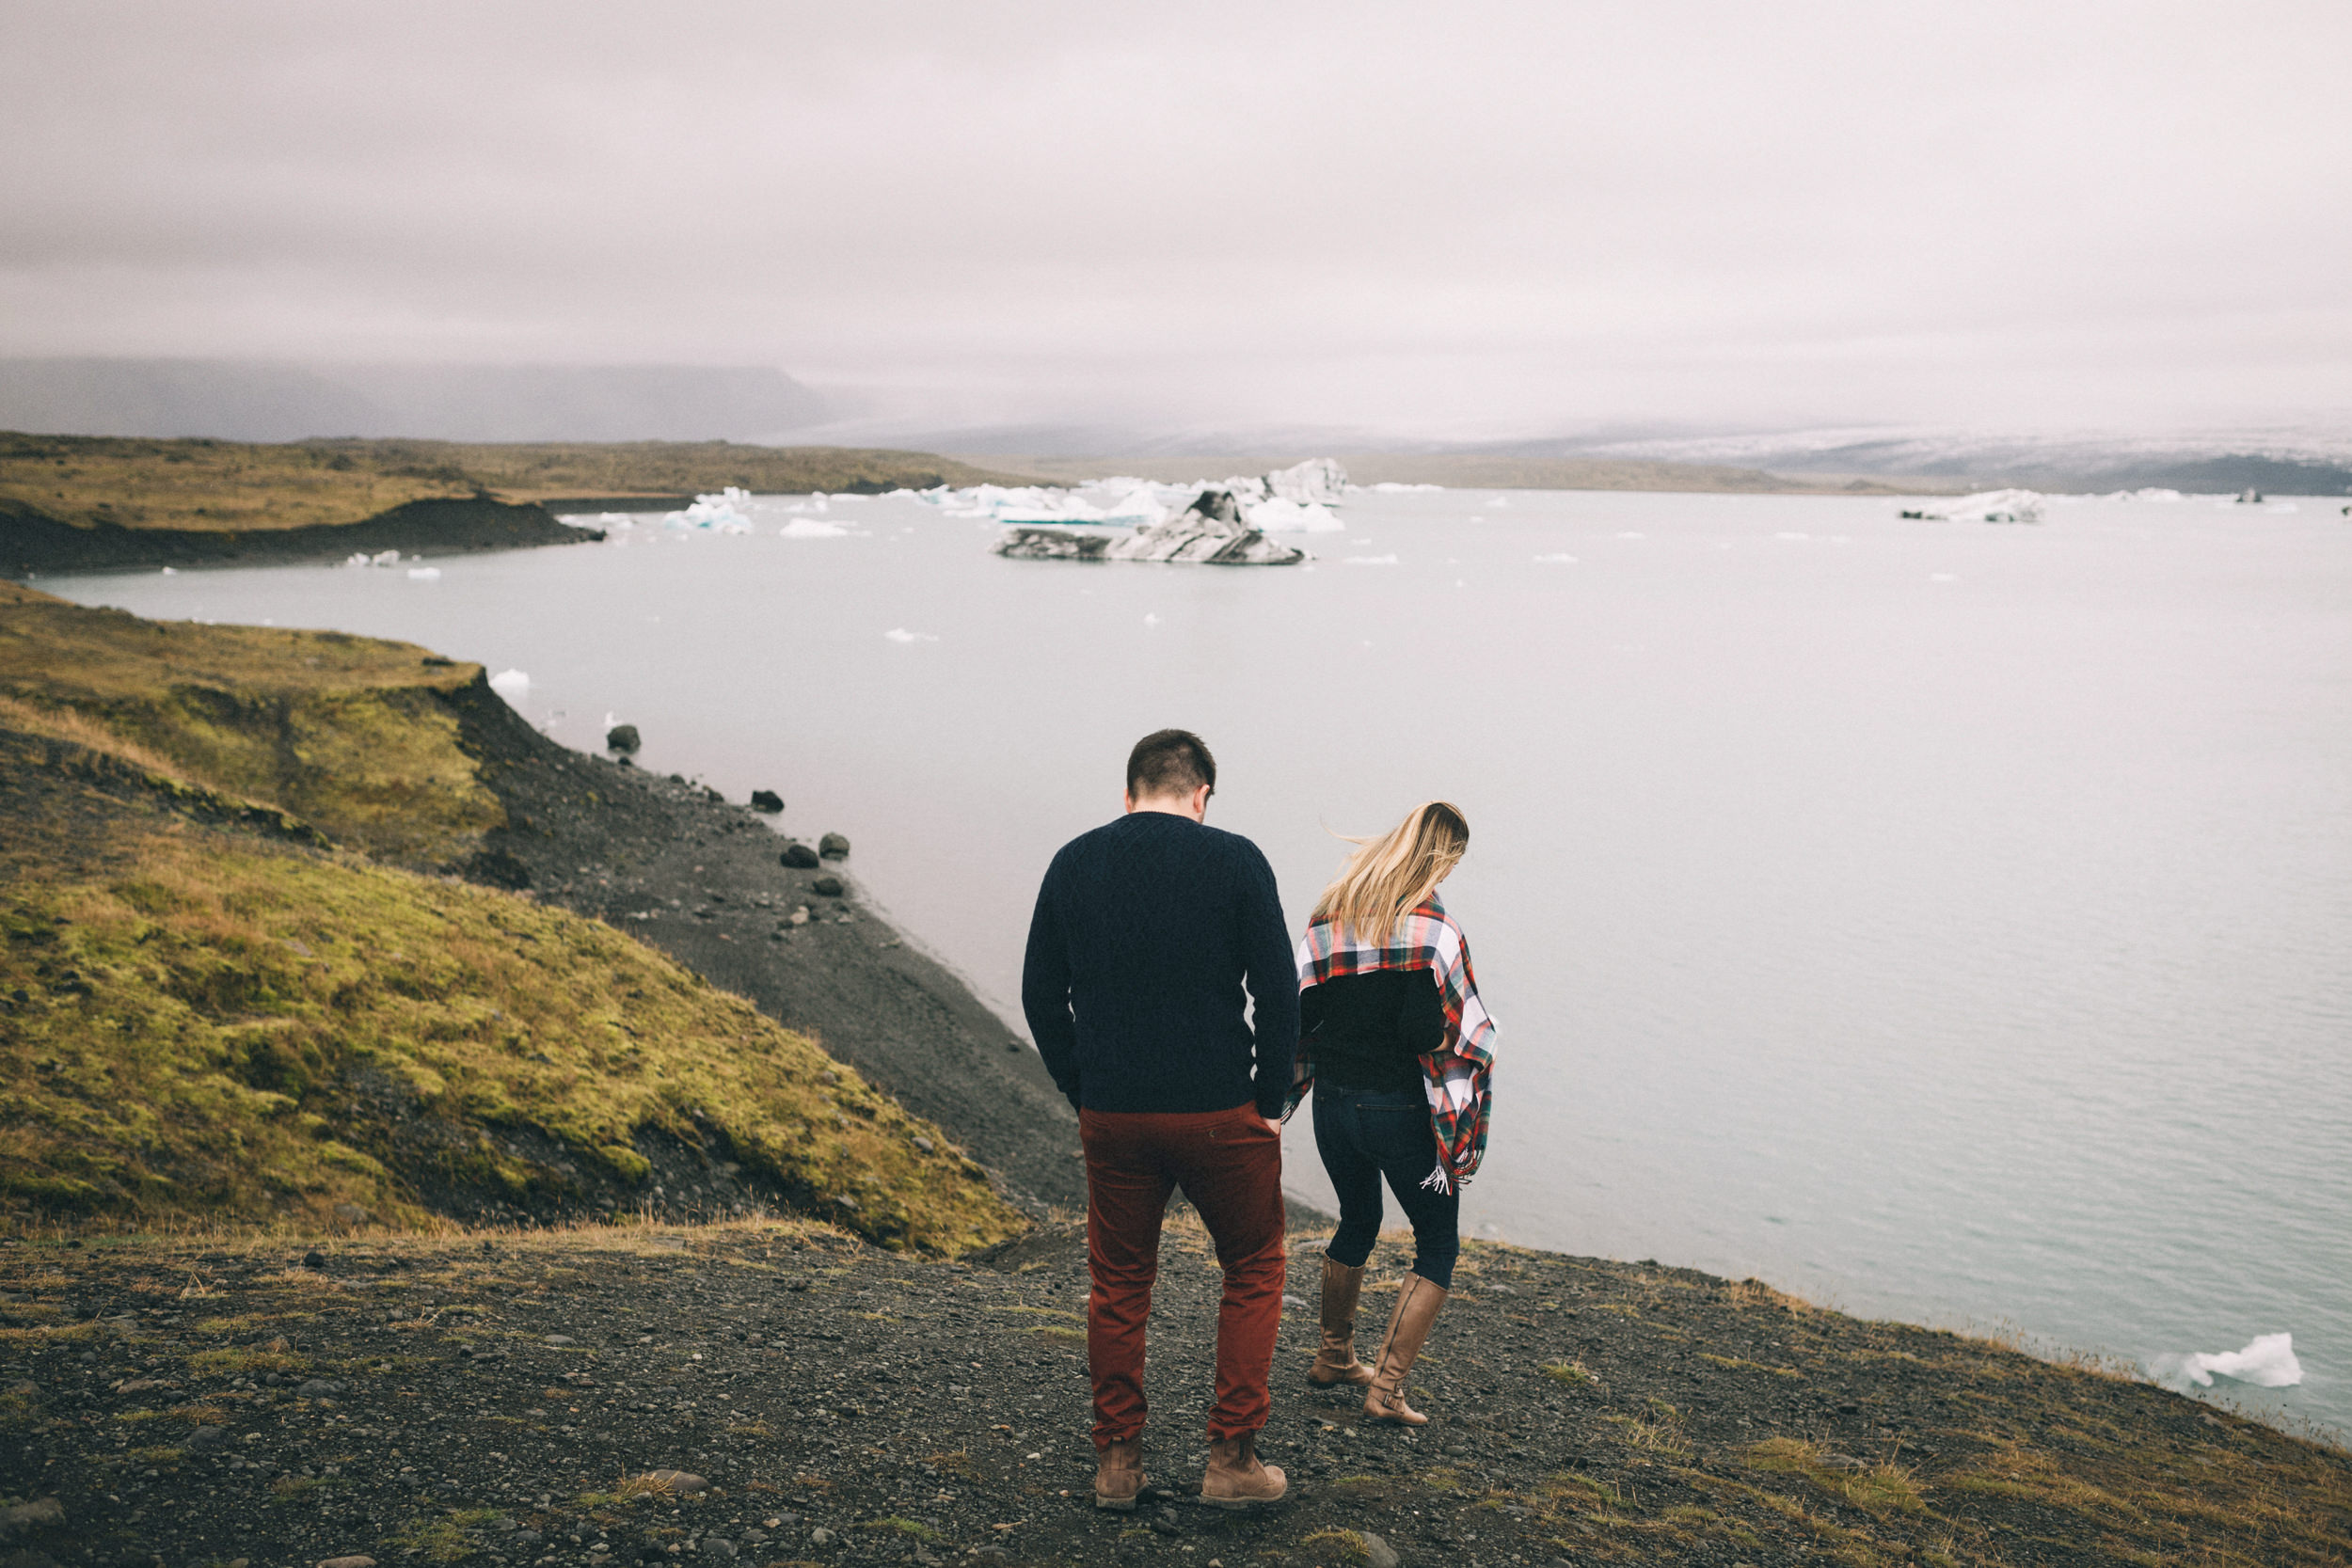 Sarah-Katherine-Davis-Photography-Iceland-Adventure-Elopement-Photographer-Louisville-Kentucky-Wedding-Photographer-Travel-Vik-Beach-Engagement-Session-Cozy-Iceland-South-Coast-239edit.jpg